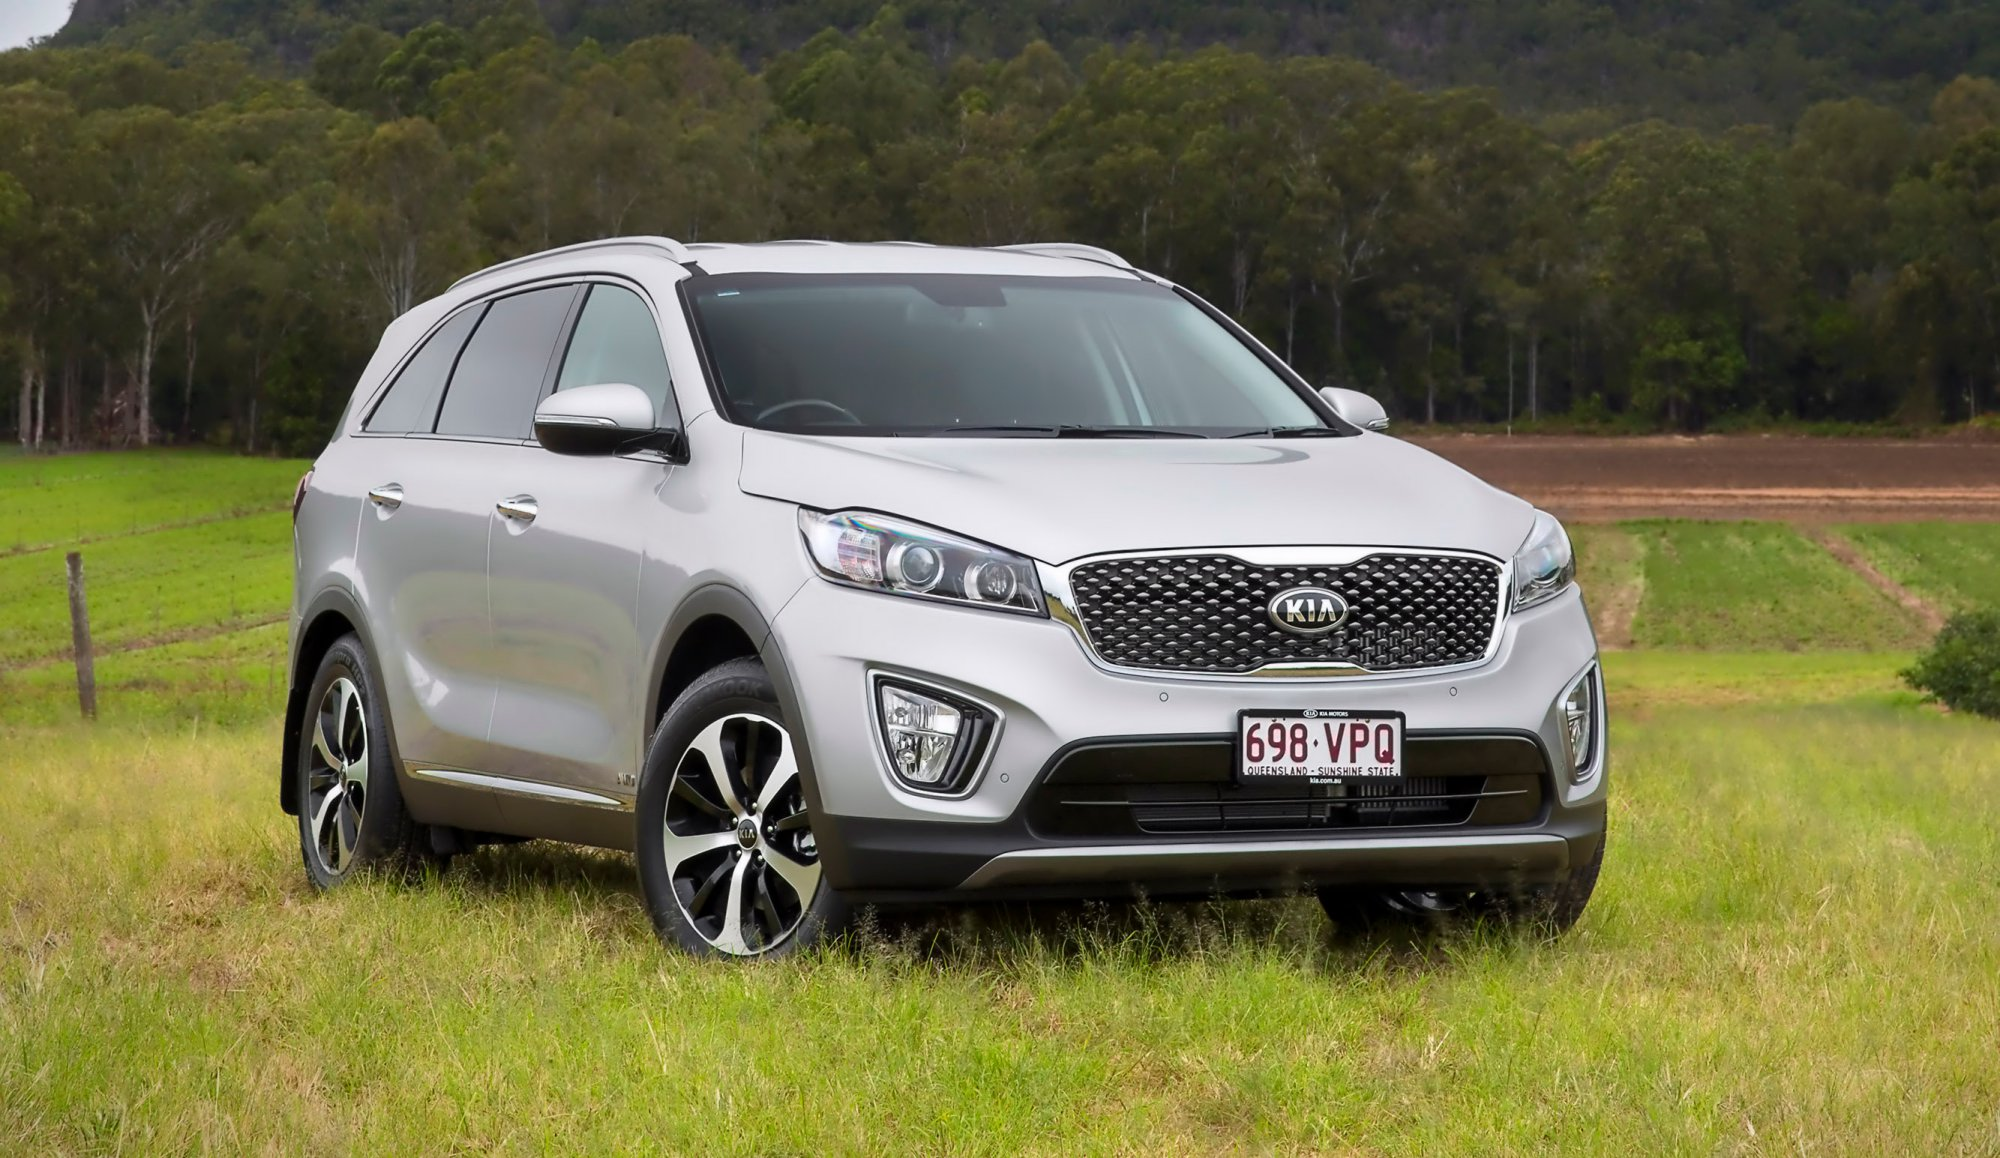 2019 Kia Sorento Pricing, Features, Ratings and Reviews ...